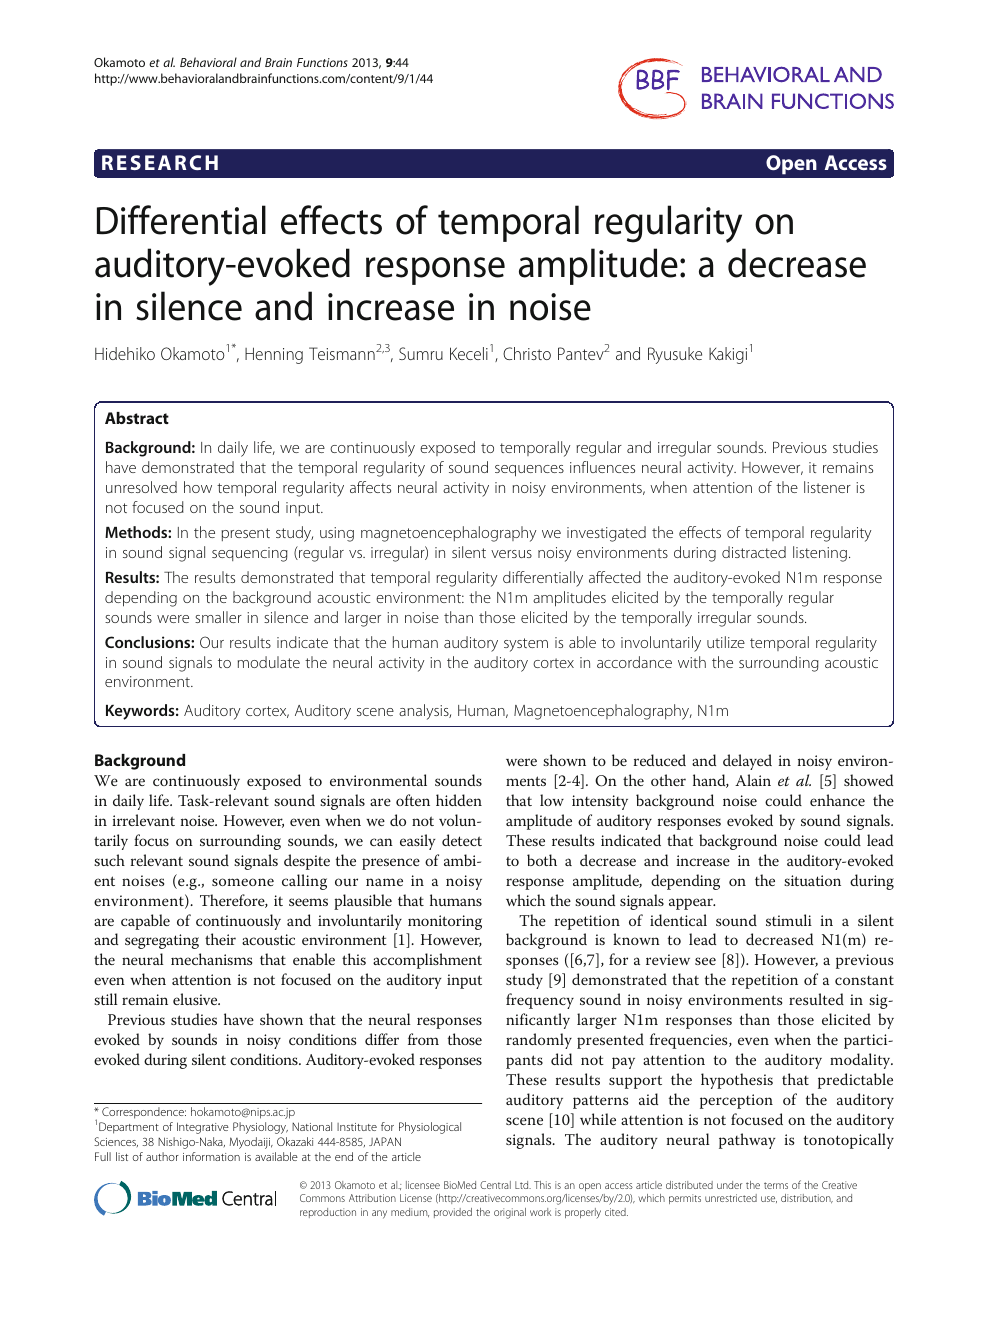 Differential effects of temporal regularity on auditory